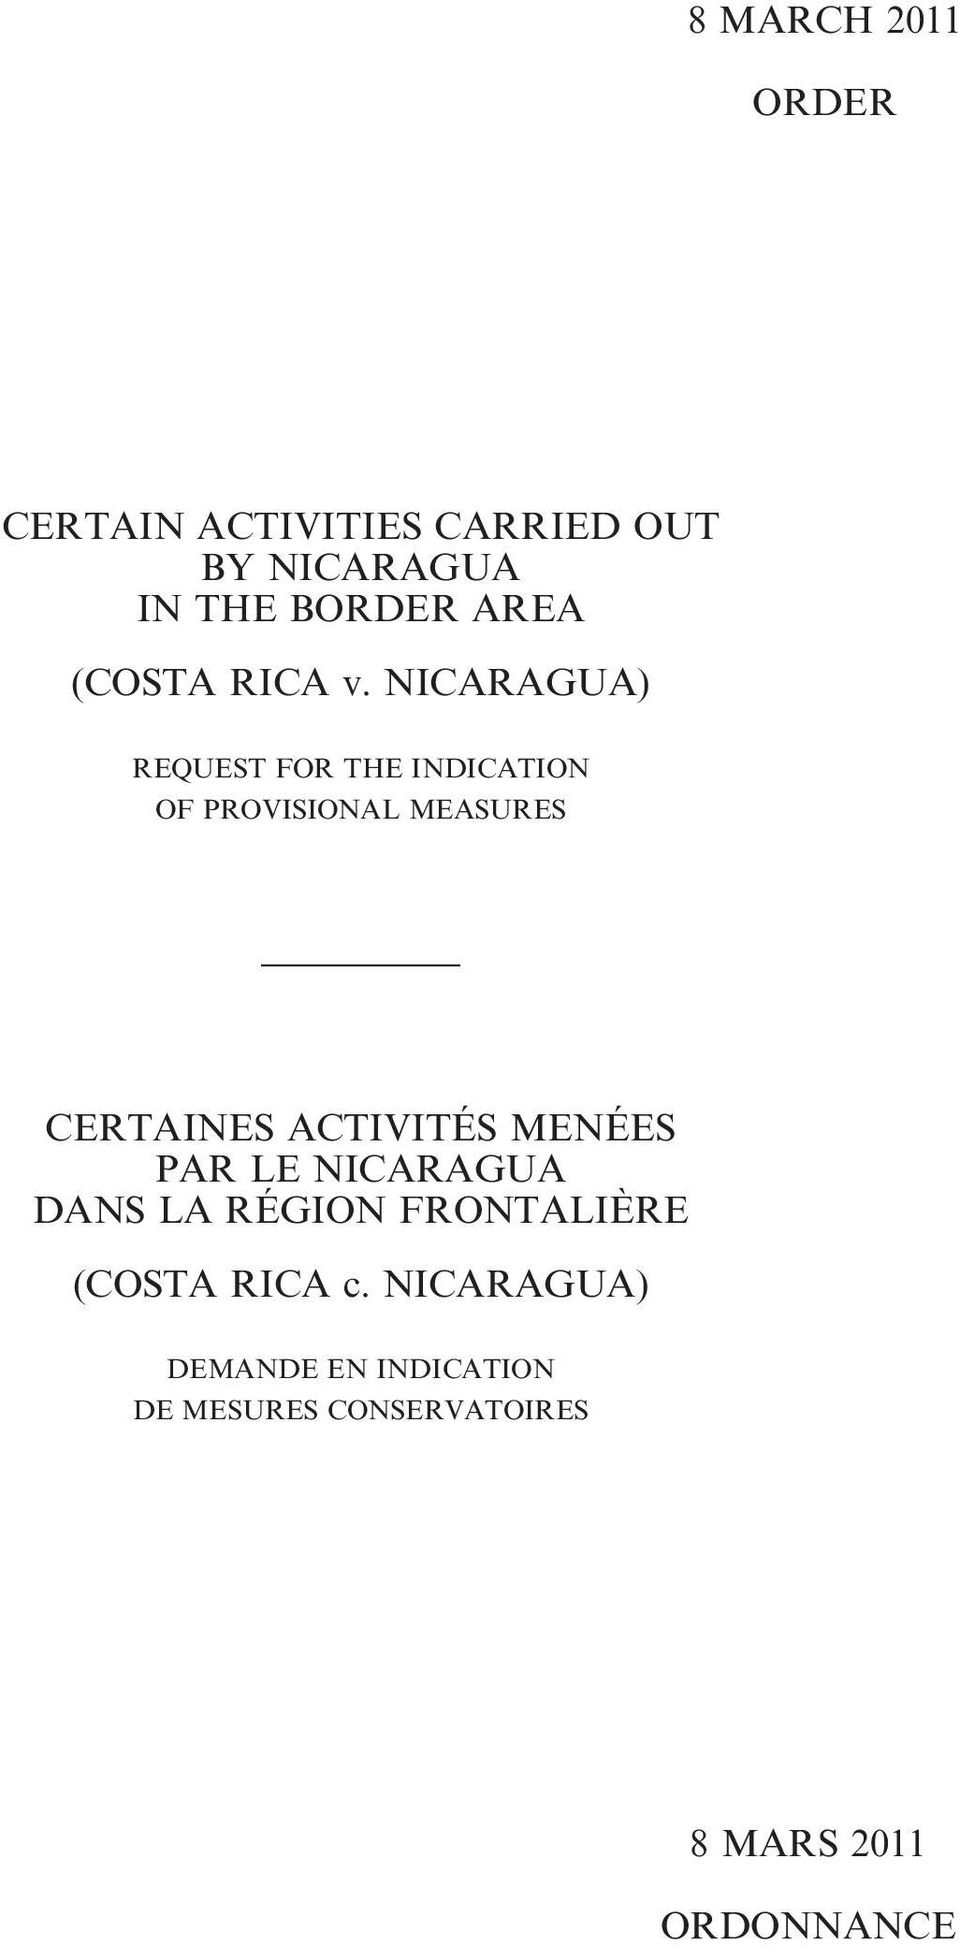 NICARAGUA) REQUEST FOR THE INDICATION OF PROVISIONAL MEASURES CERTAINES ACTIVITÉS